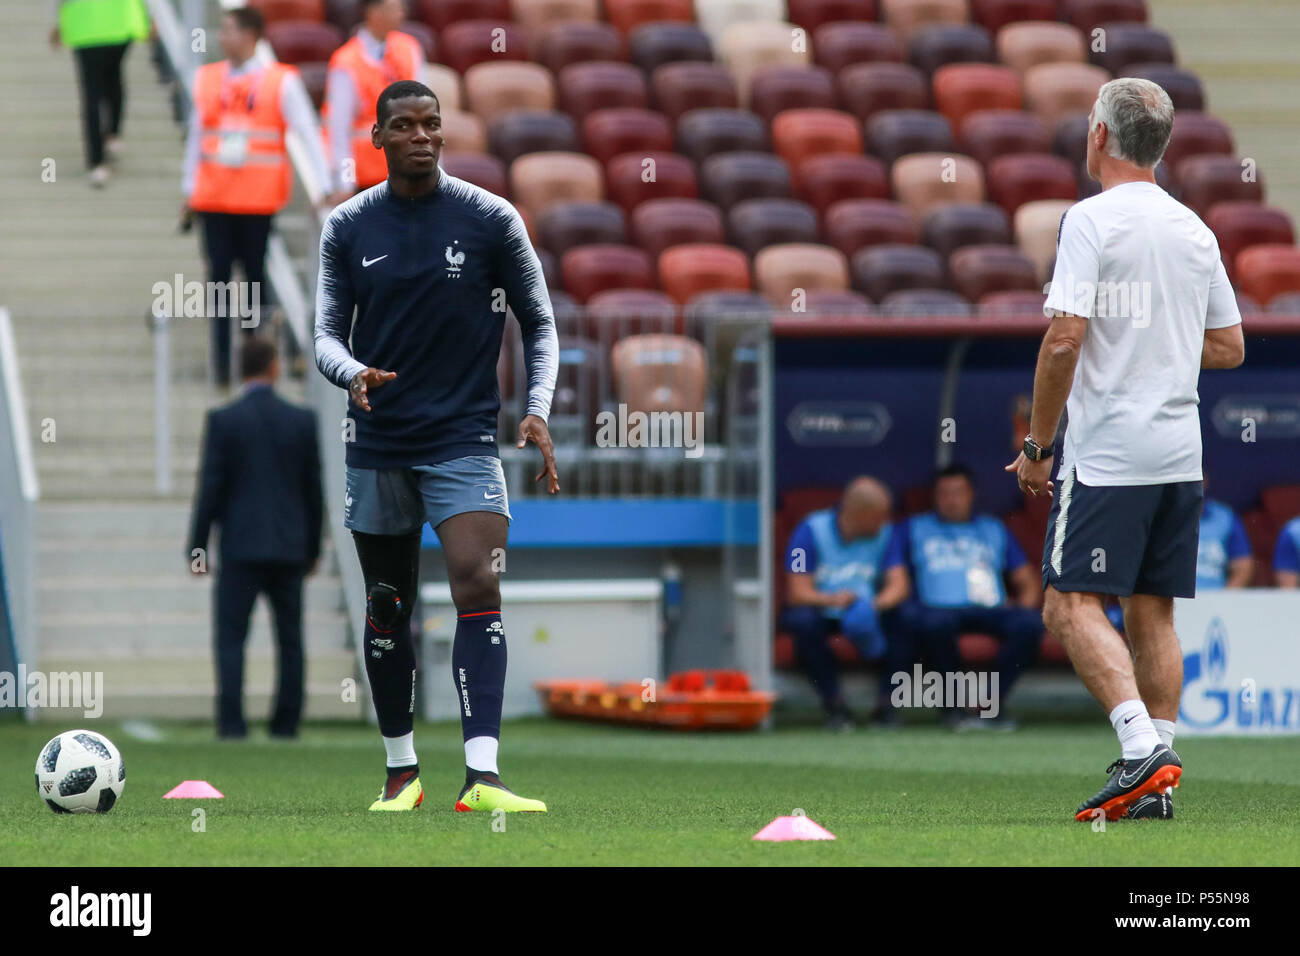 956e244420 French Didier Deschamps Stock Photos   French Didier Deschamps Stock ...